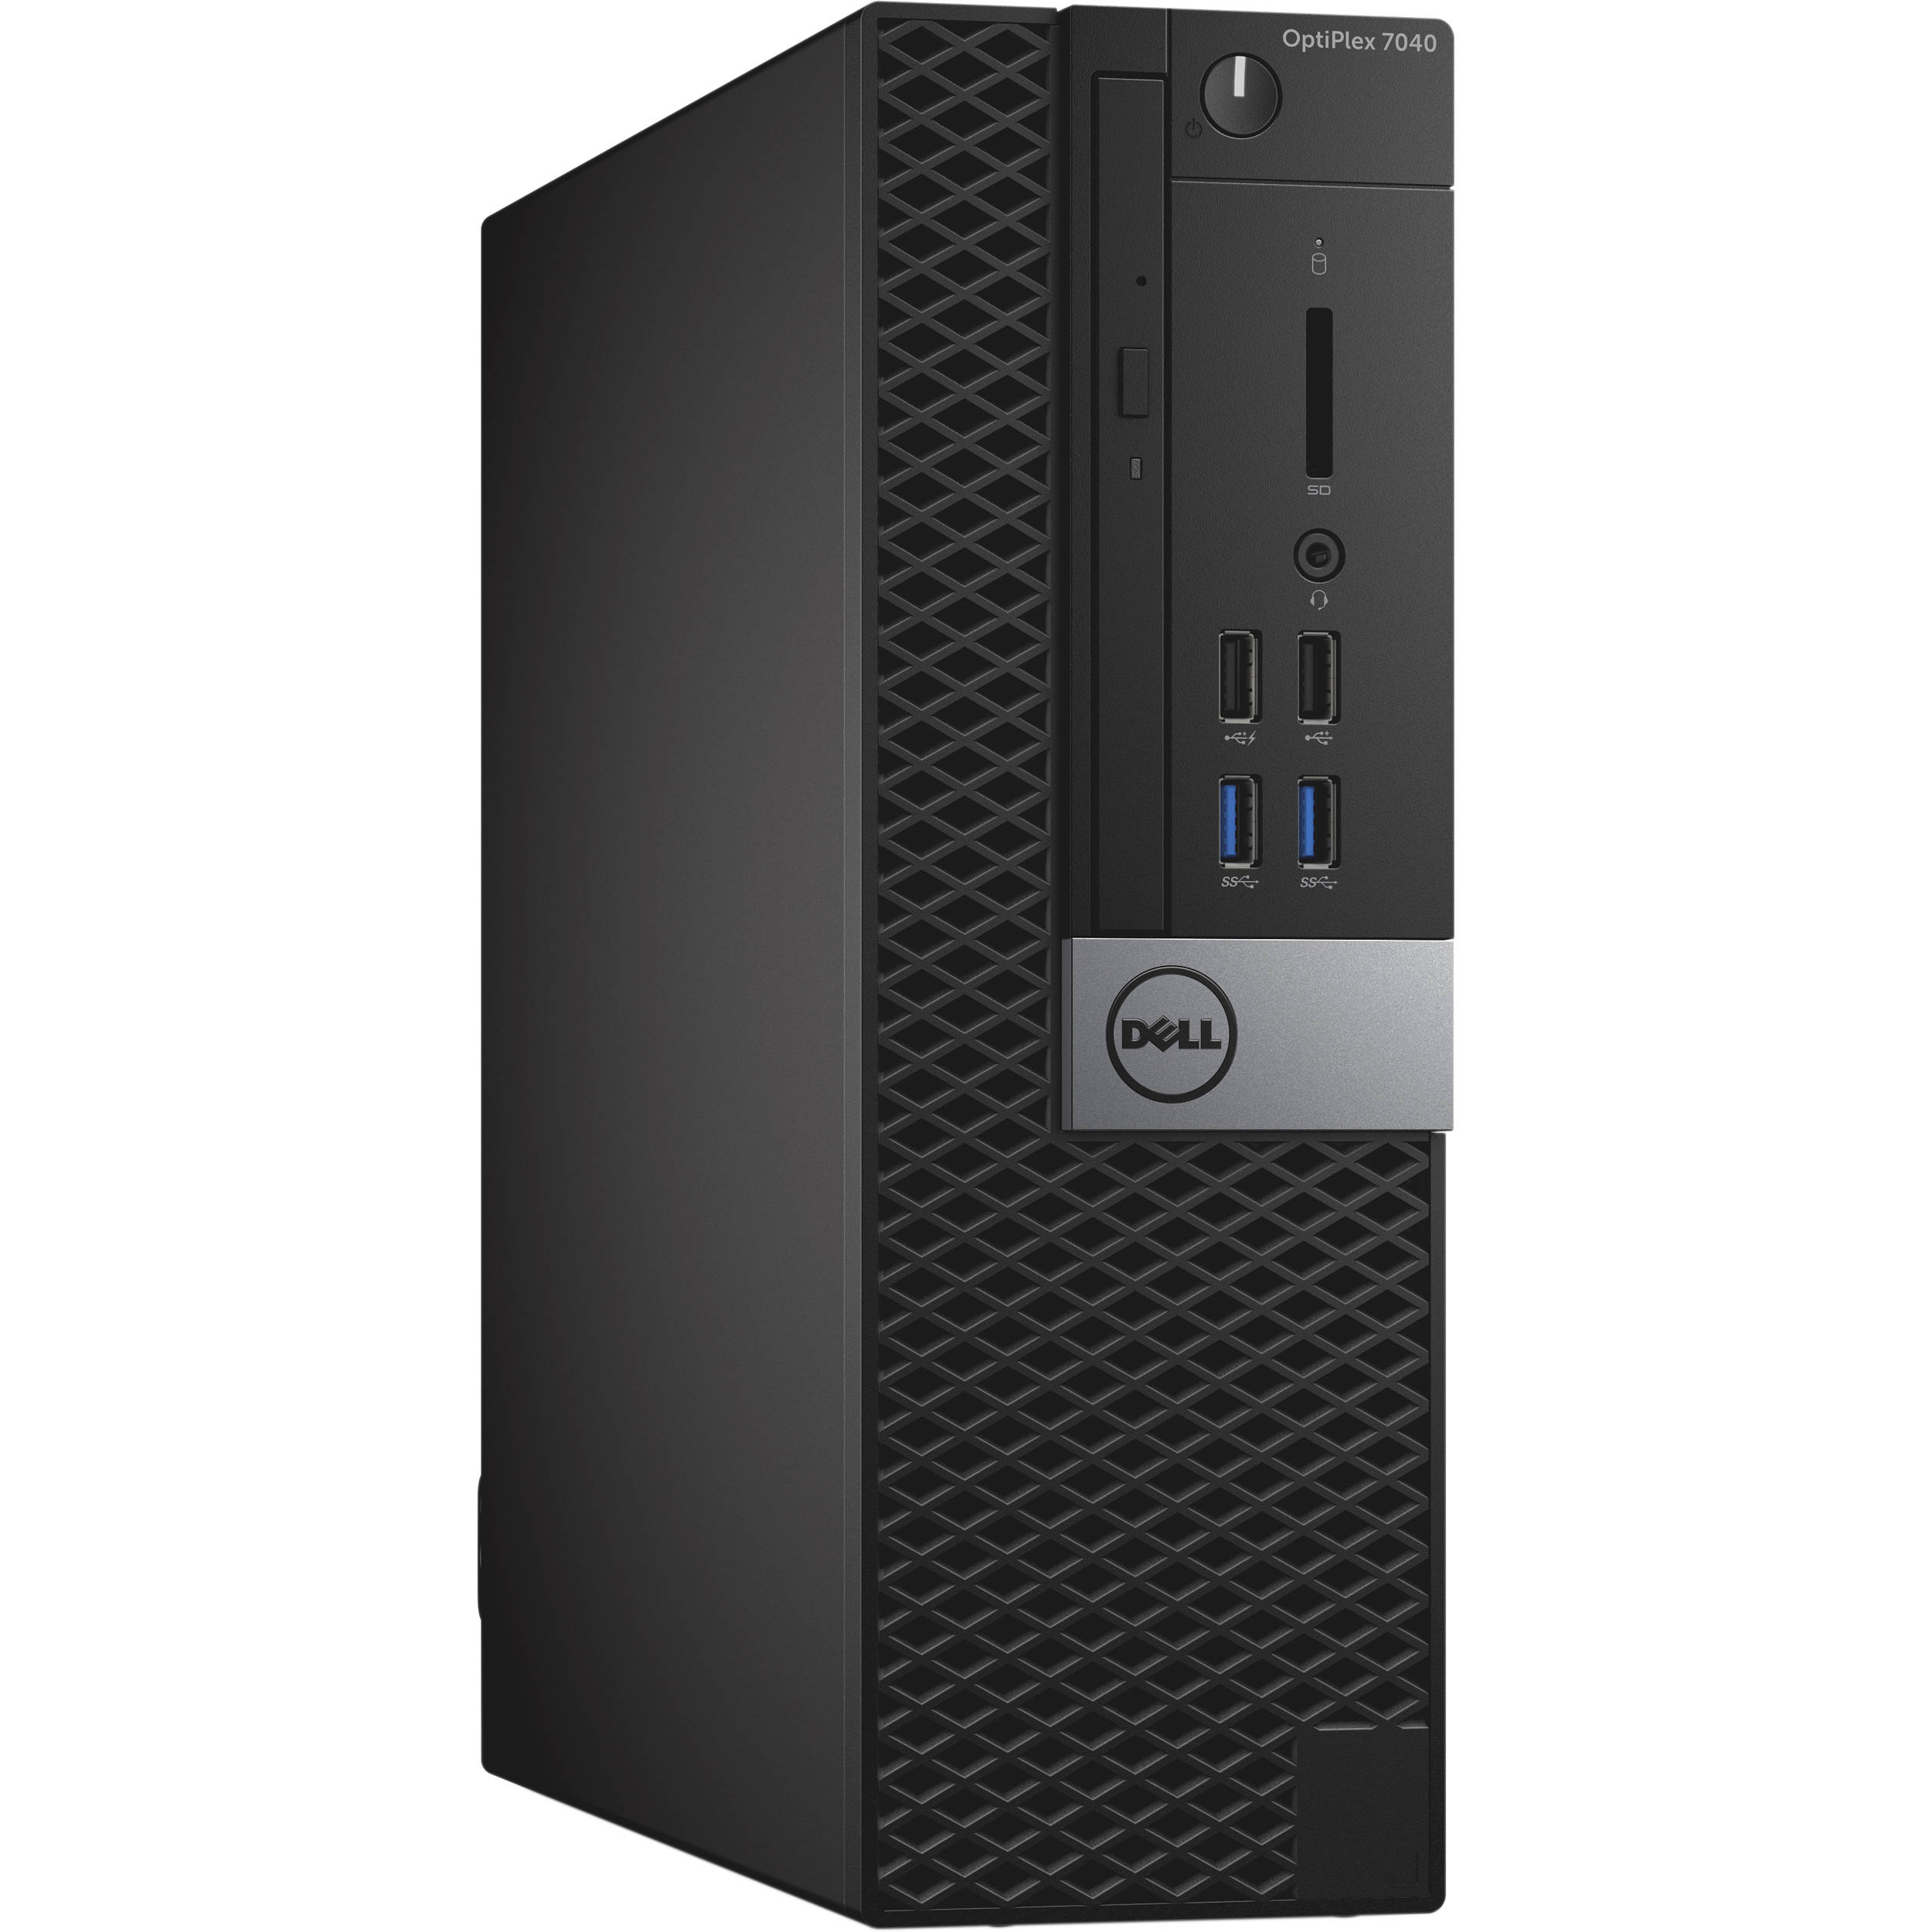 Dell Optiplex 7040 Small Form Factor Desktop Computer